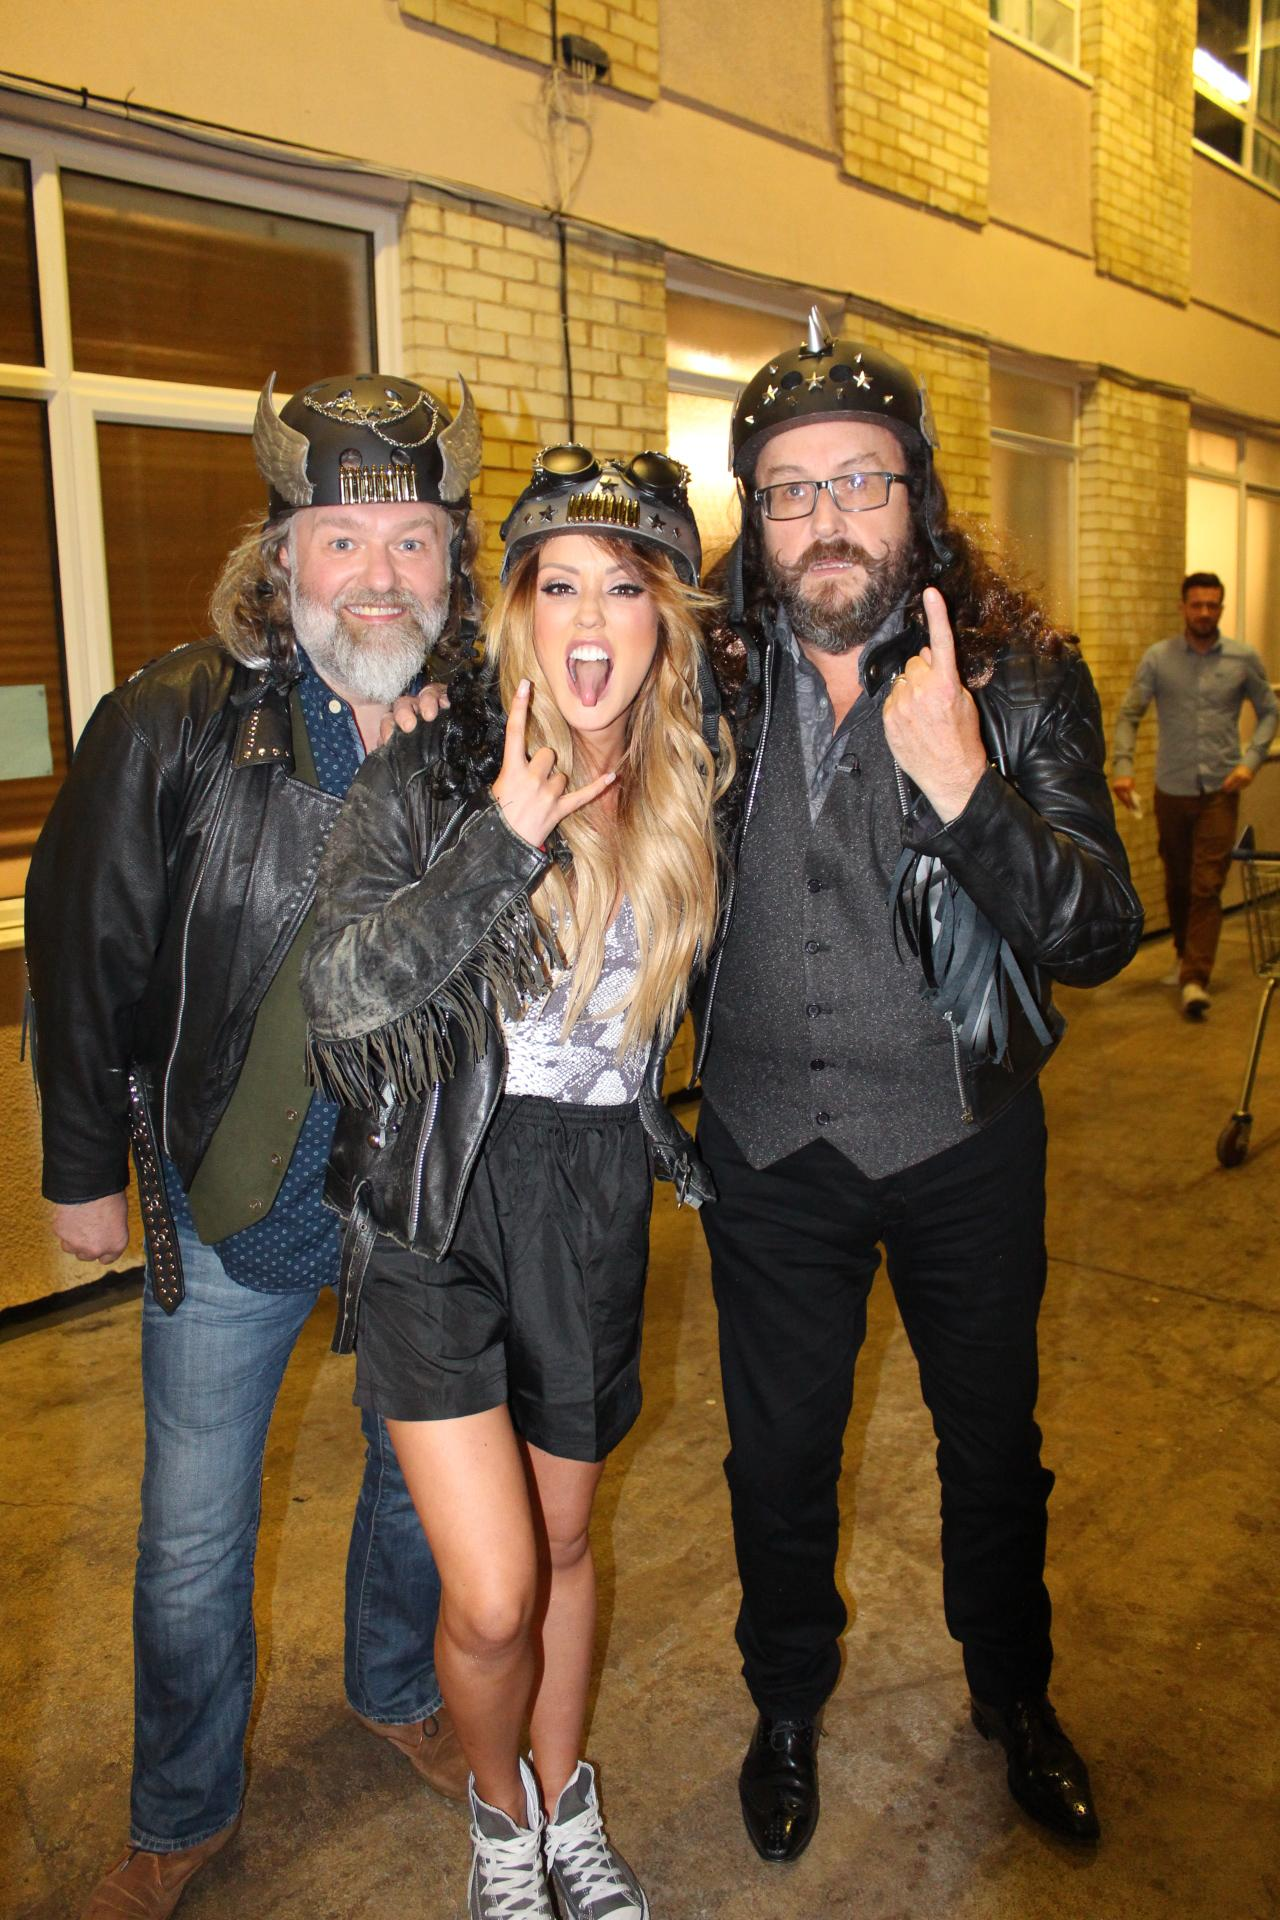 .@Charlottegshore doing her best @HairyBikers pose before the big bike race on tonight's show.Tune in at 10pm @itv2 http://t.co/DtDnz1EZDn